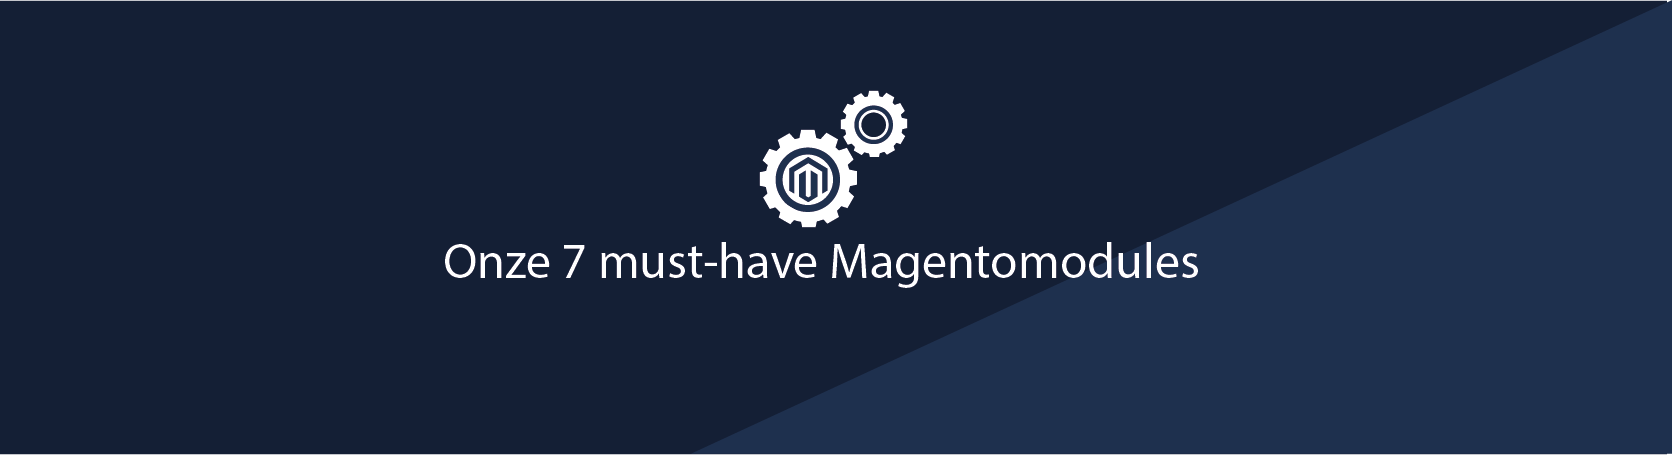 Aquive media Magento must have modules